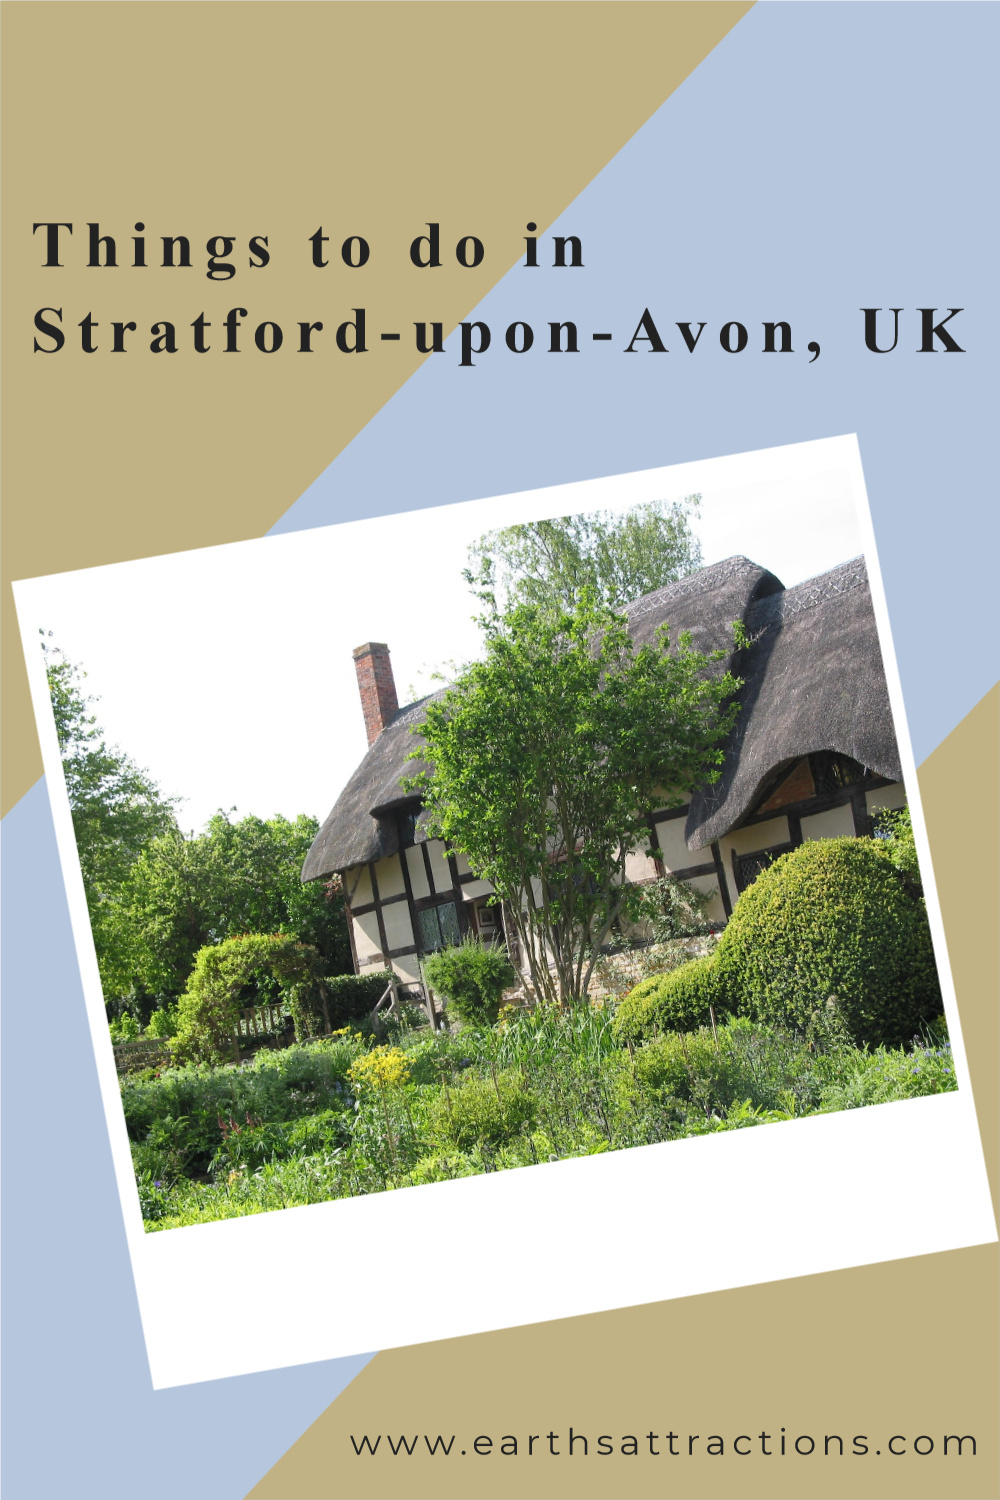 Stratford-upon-Avon things to do. Read this Stratford-upon-Avon guide to discover what to do in Stratford-upon-Avon, UK. Read this article now and save this pin to your board #stratford #stratforduponavon #uk #warwickshire #uktravel #europetravel #travelguides #traveldestination #smalltown #smalltowntravel #earthsattractions